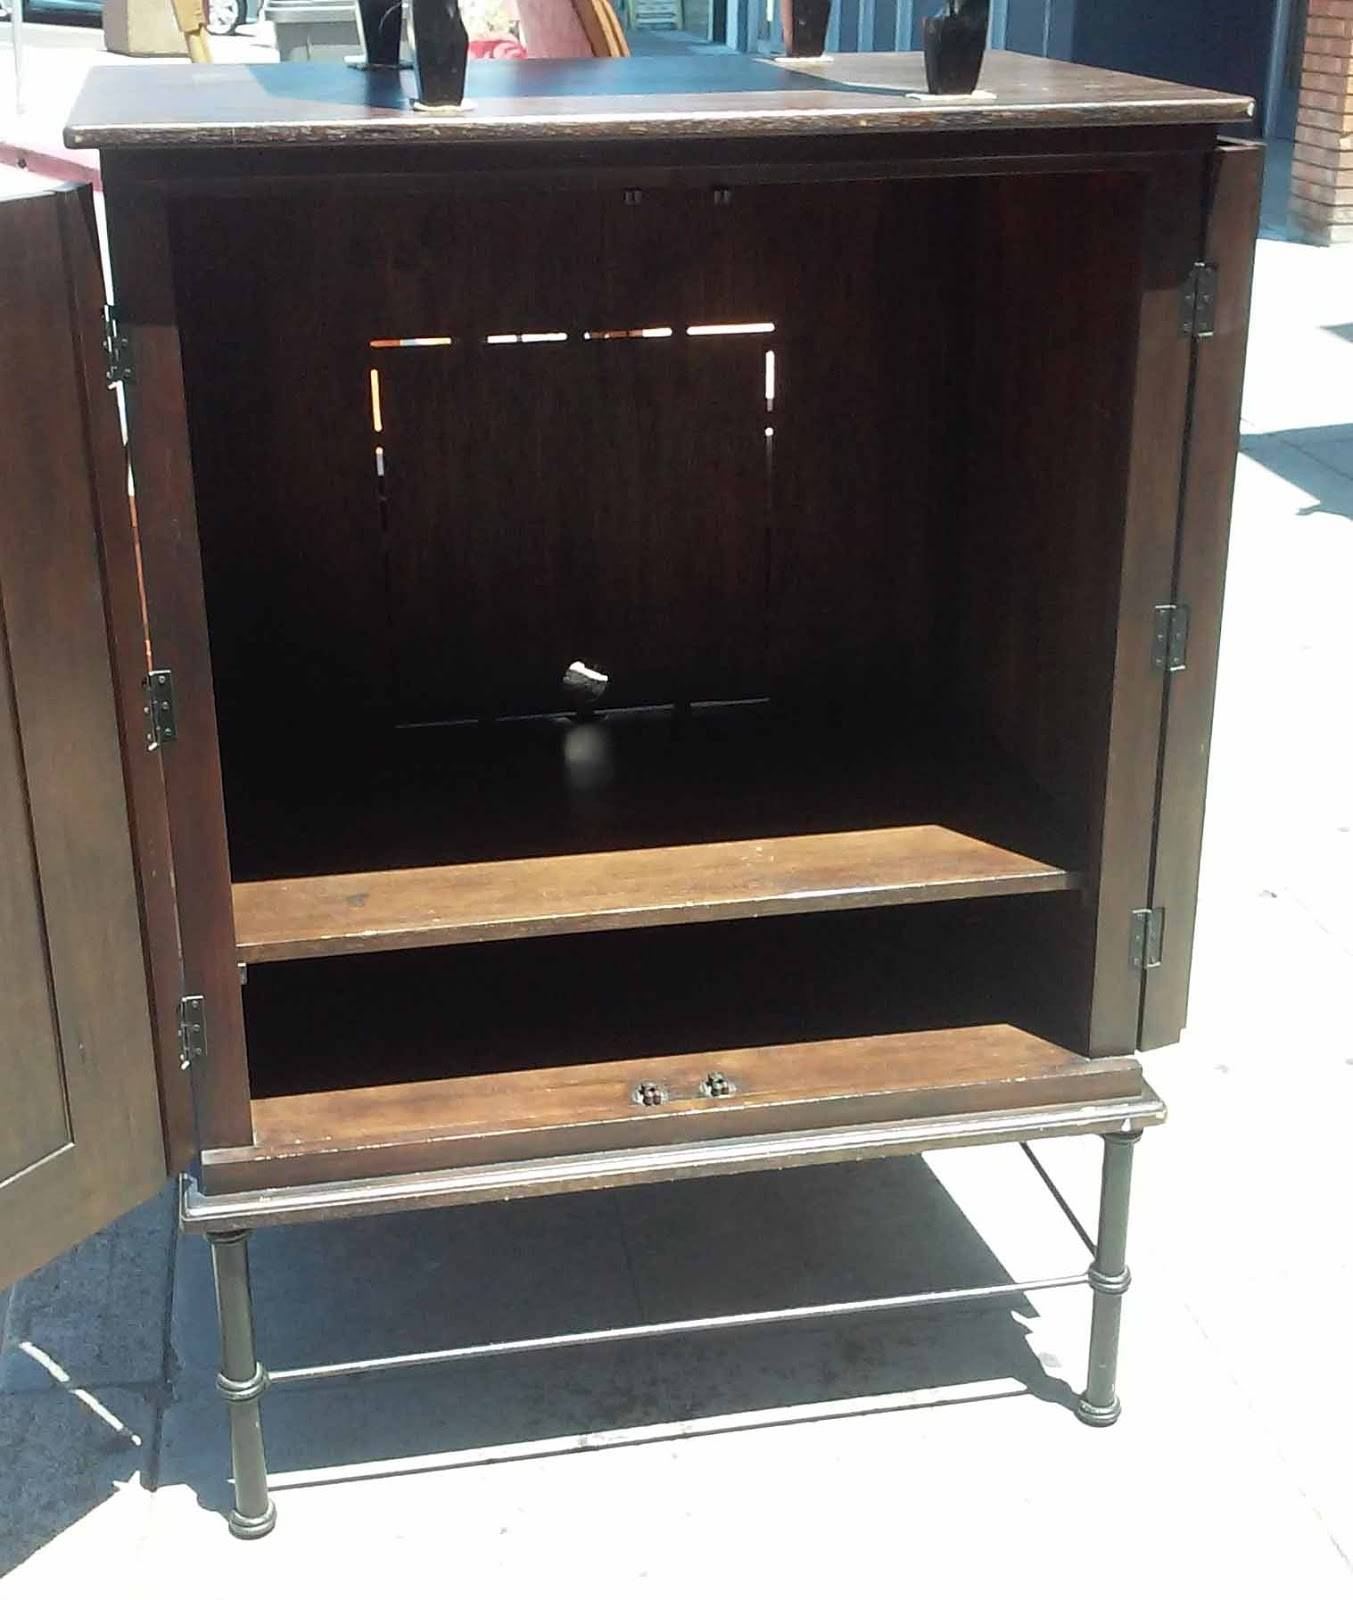 Uhuru Furniture & Collectibles: Sold Modern Asian Espresso Tv Intended For Asian Tv Cabinets (View 14 of 15)